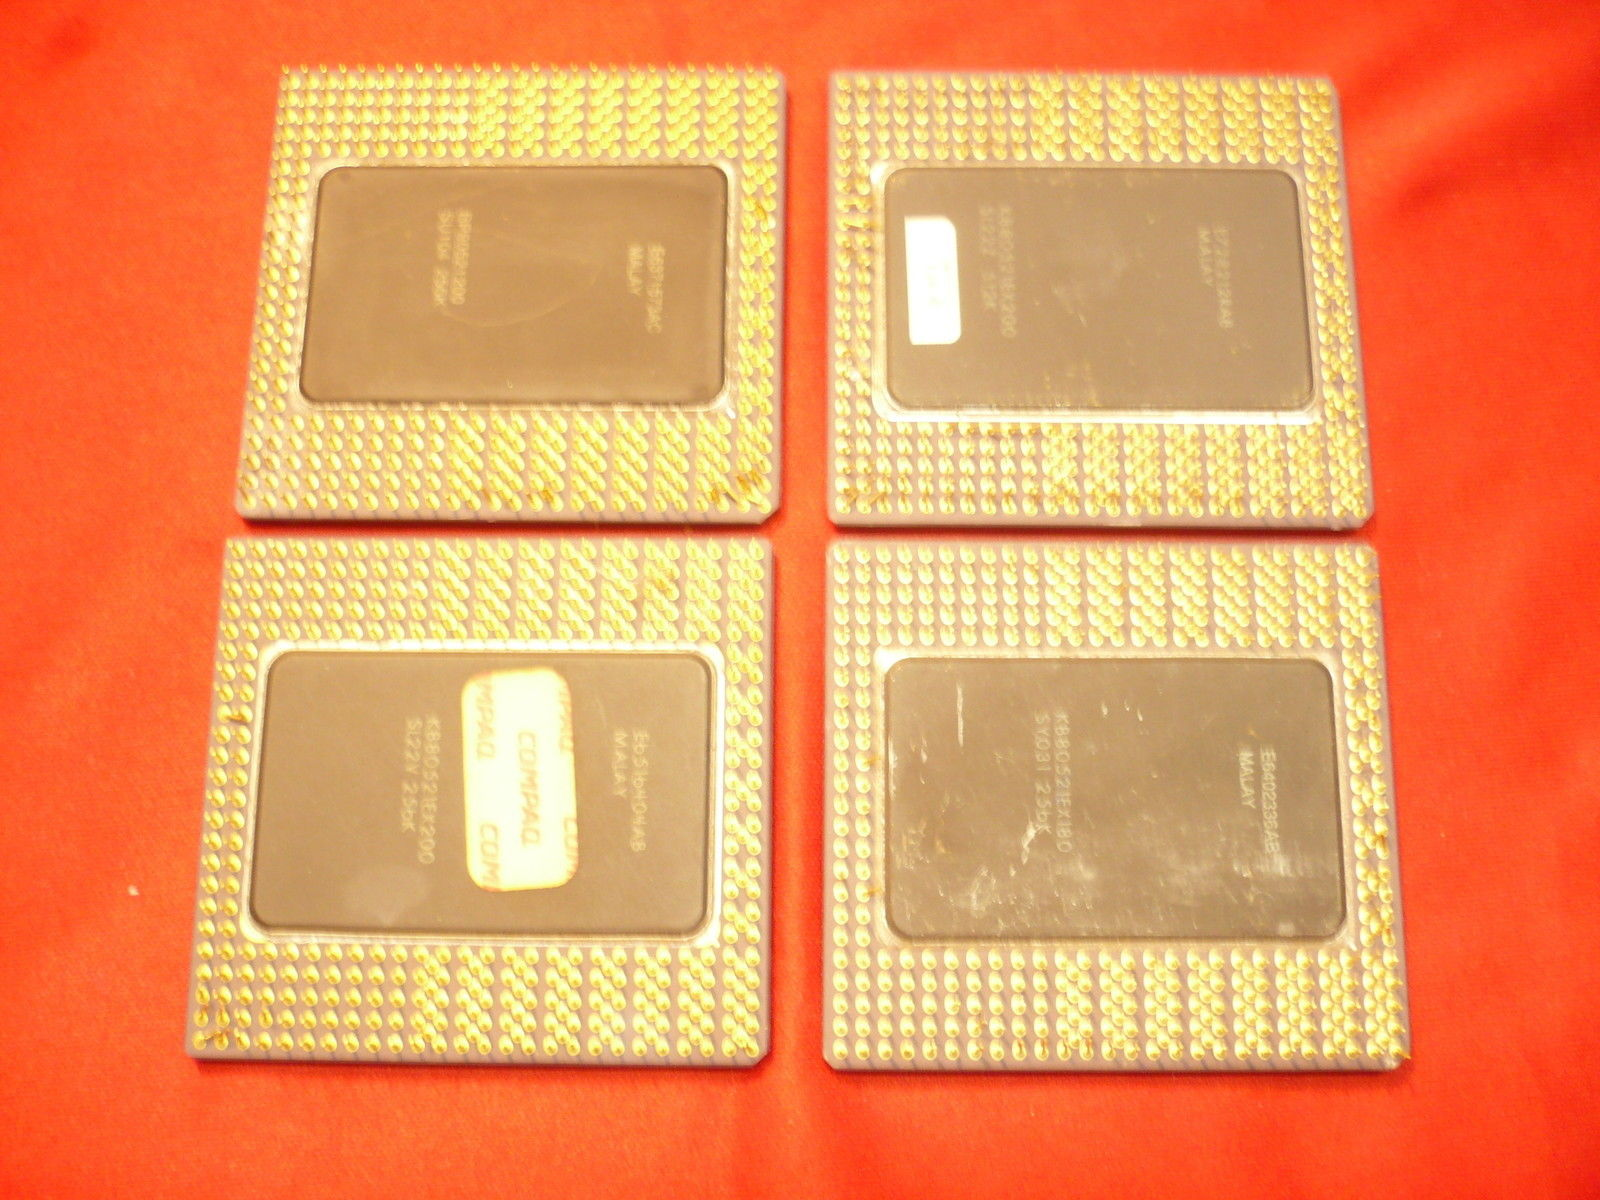 Intel i960 Ceramic Gold Cap Processor,Ceramic Gold Cap CPU Chips,AMD 486 586 Ceramic Gold Cap CPU